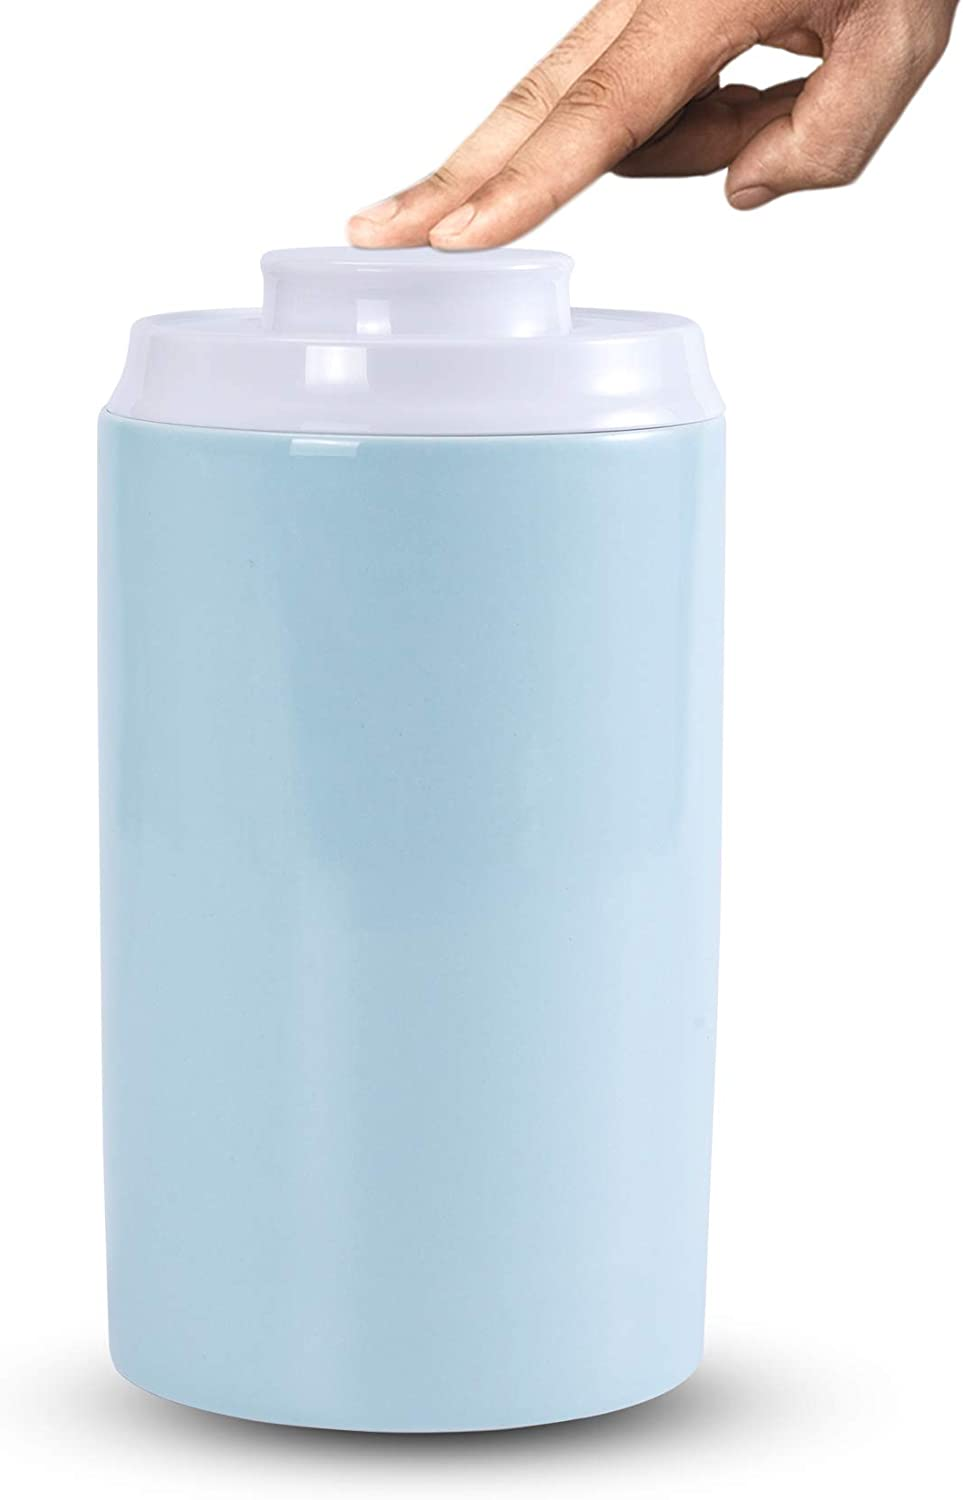 SIDUCAL Food Storage Containers, Kitchen Storage Canister Ceramic Jar with Pop Airtight Lid, 39 Oz Portable Crock For Tea Sugar Coffee Spices 7.3inch x 4.4inch -Light Blue